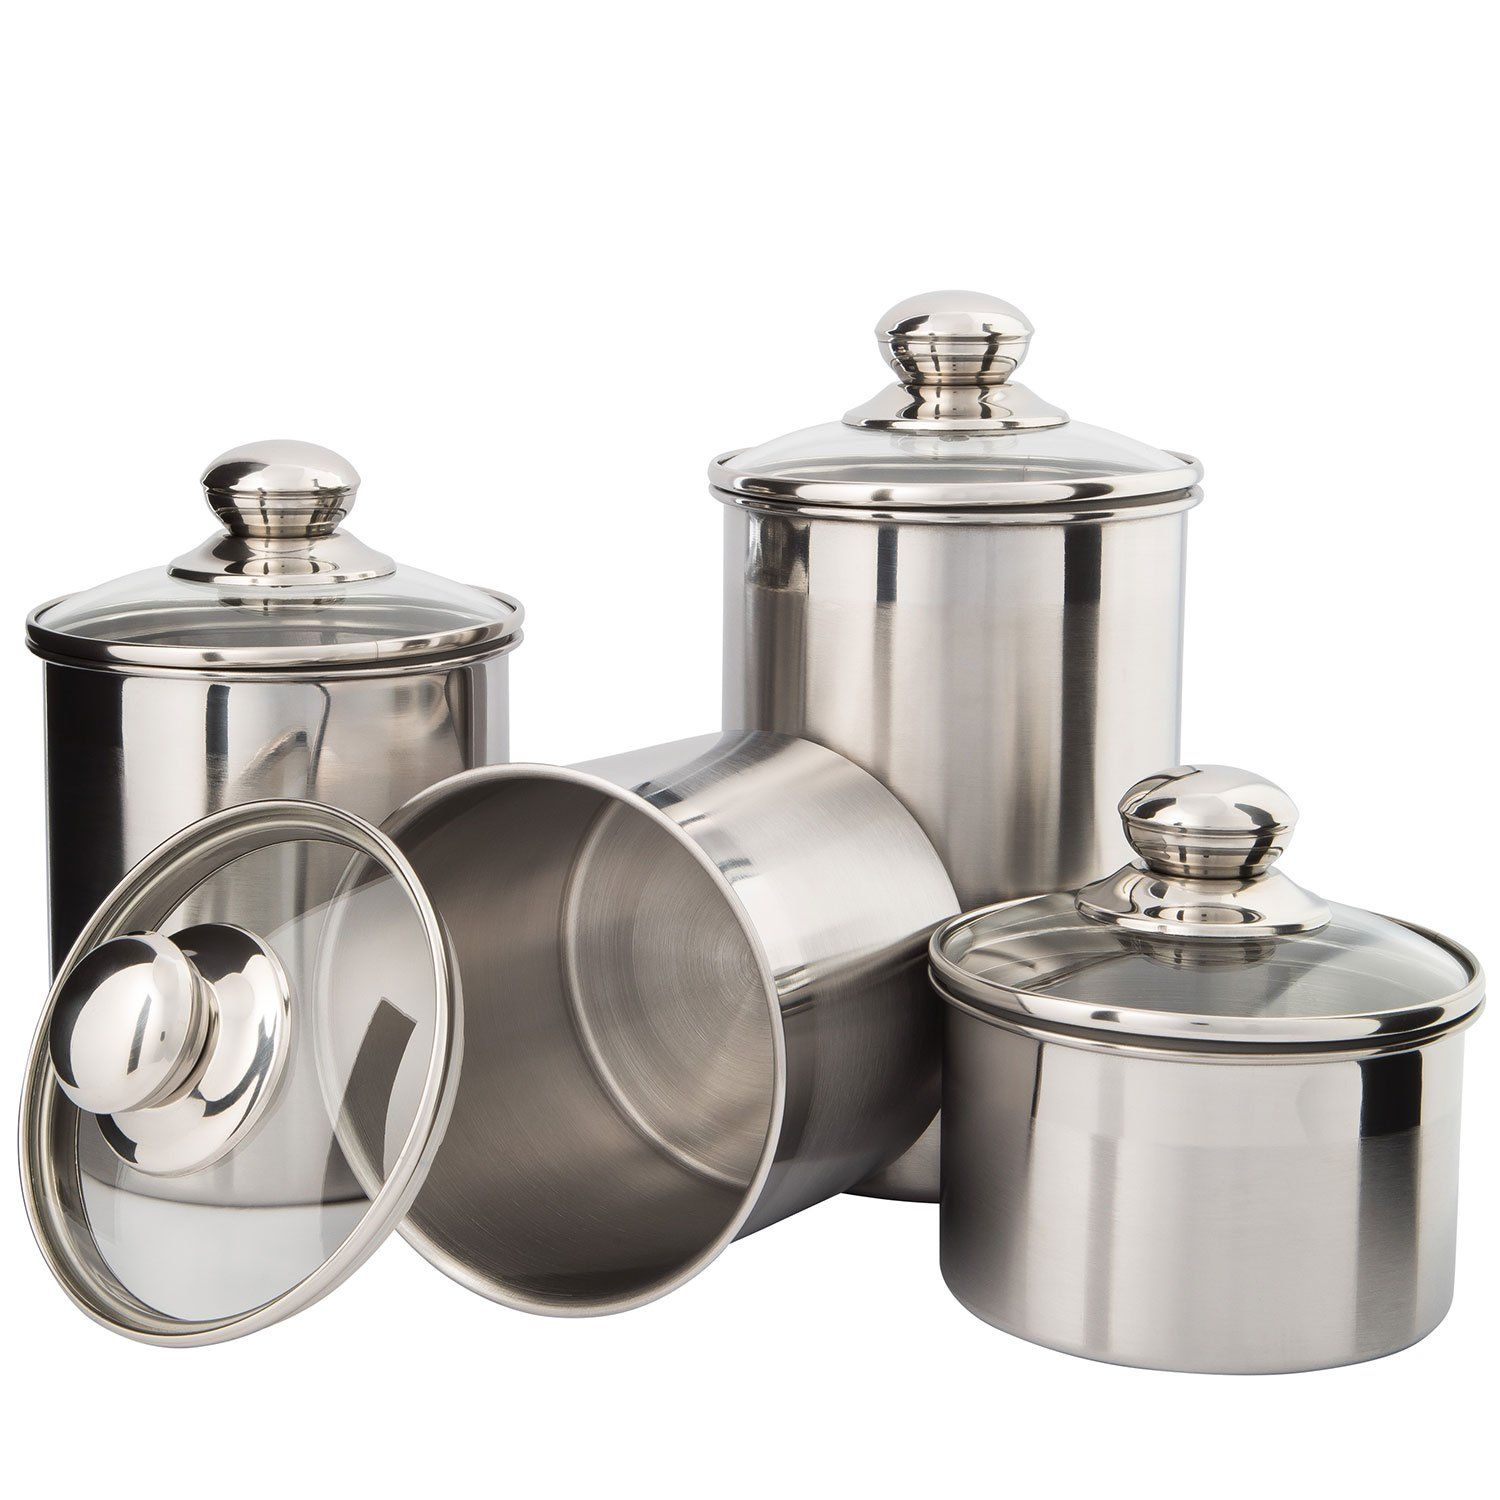 Canister Set Stainless Steel Beautiful Canisters For Kitchen Counter